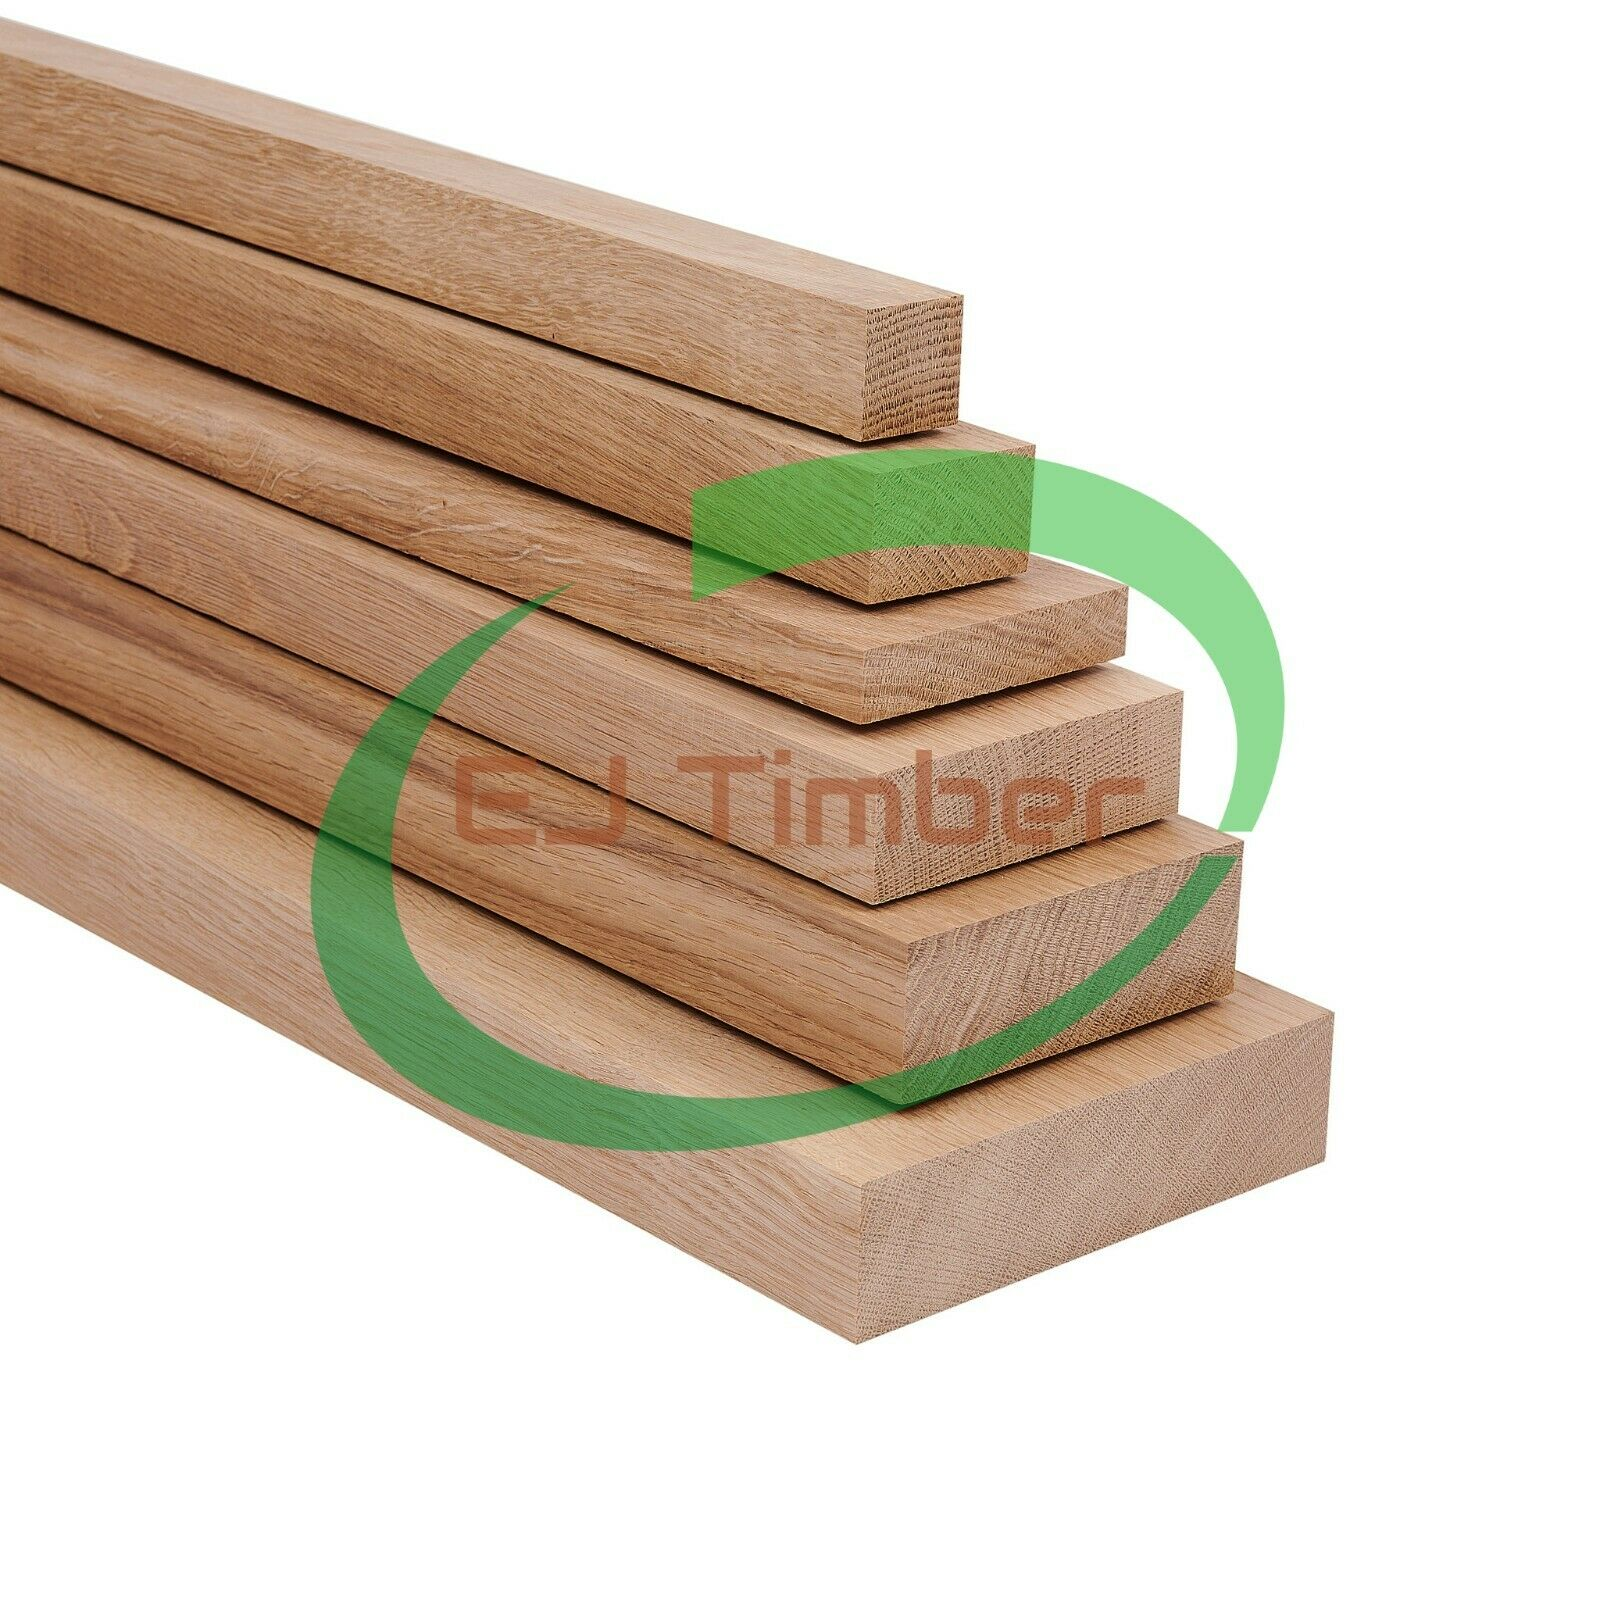 20mm OAK For Skirting, Architrave, Shelve, PAR, Cut To Sizes, Price Per 1m